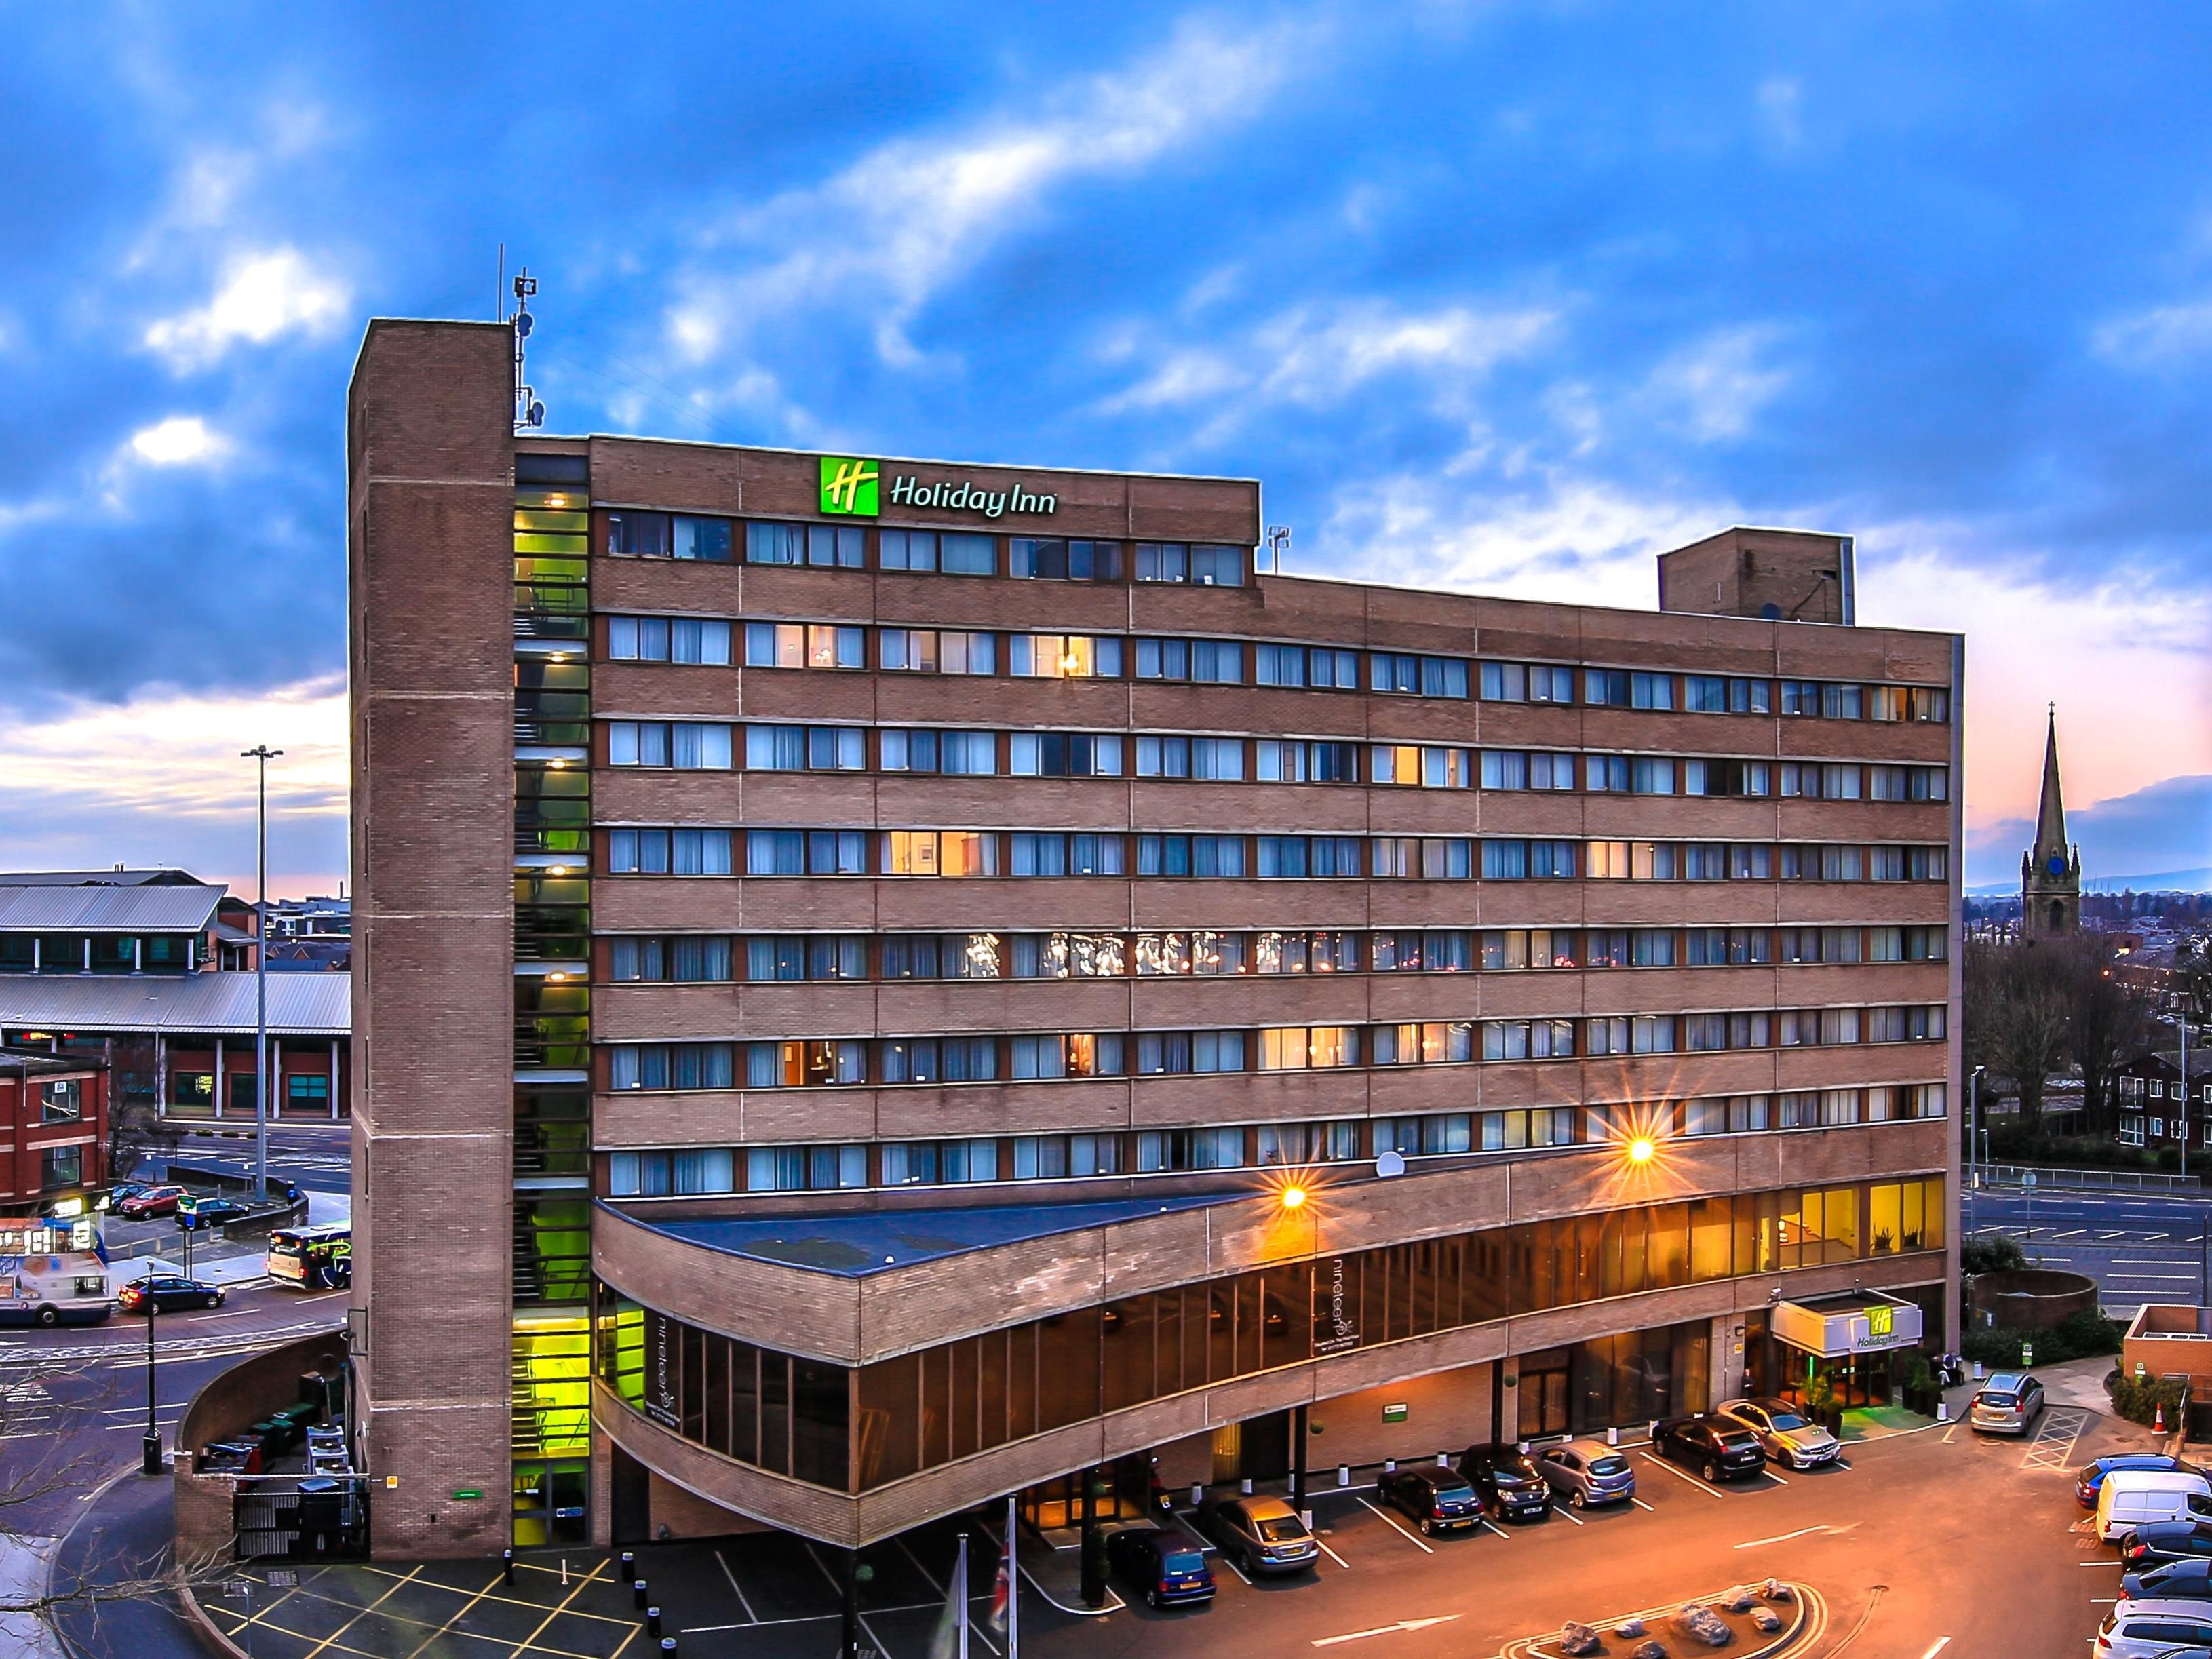 Holiday Inn Preston as the sun sets